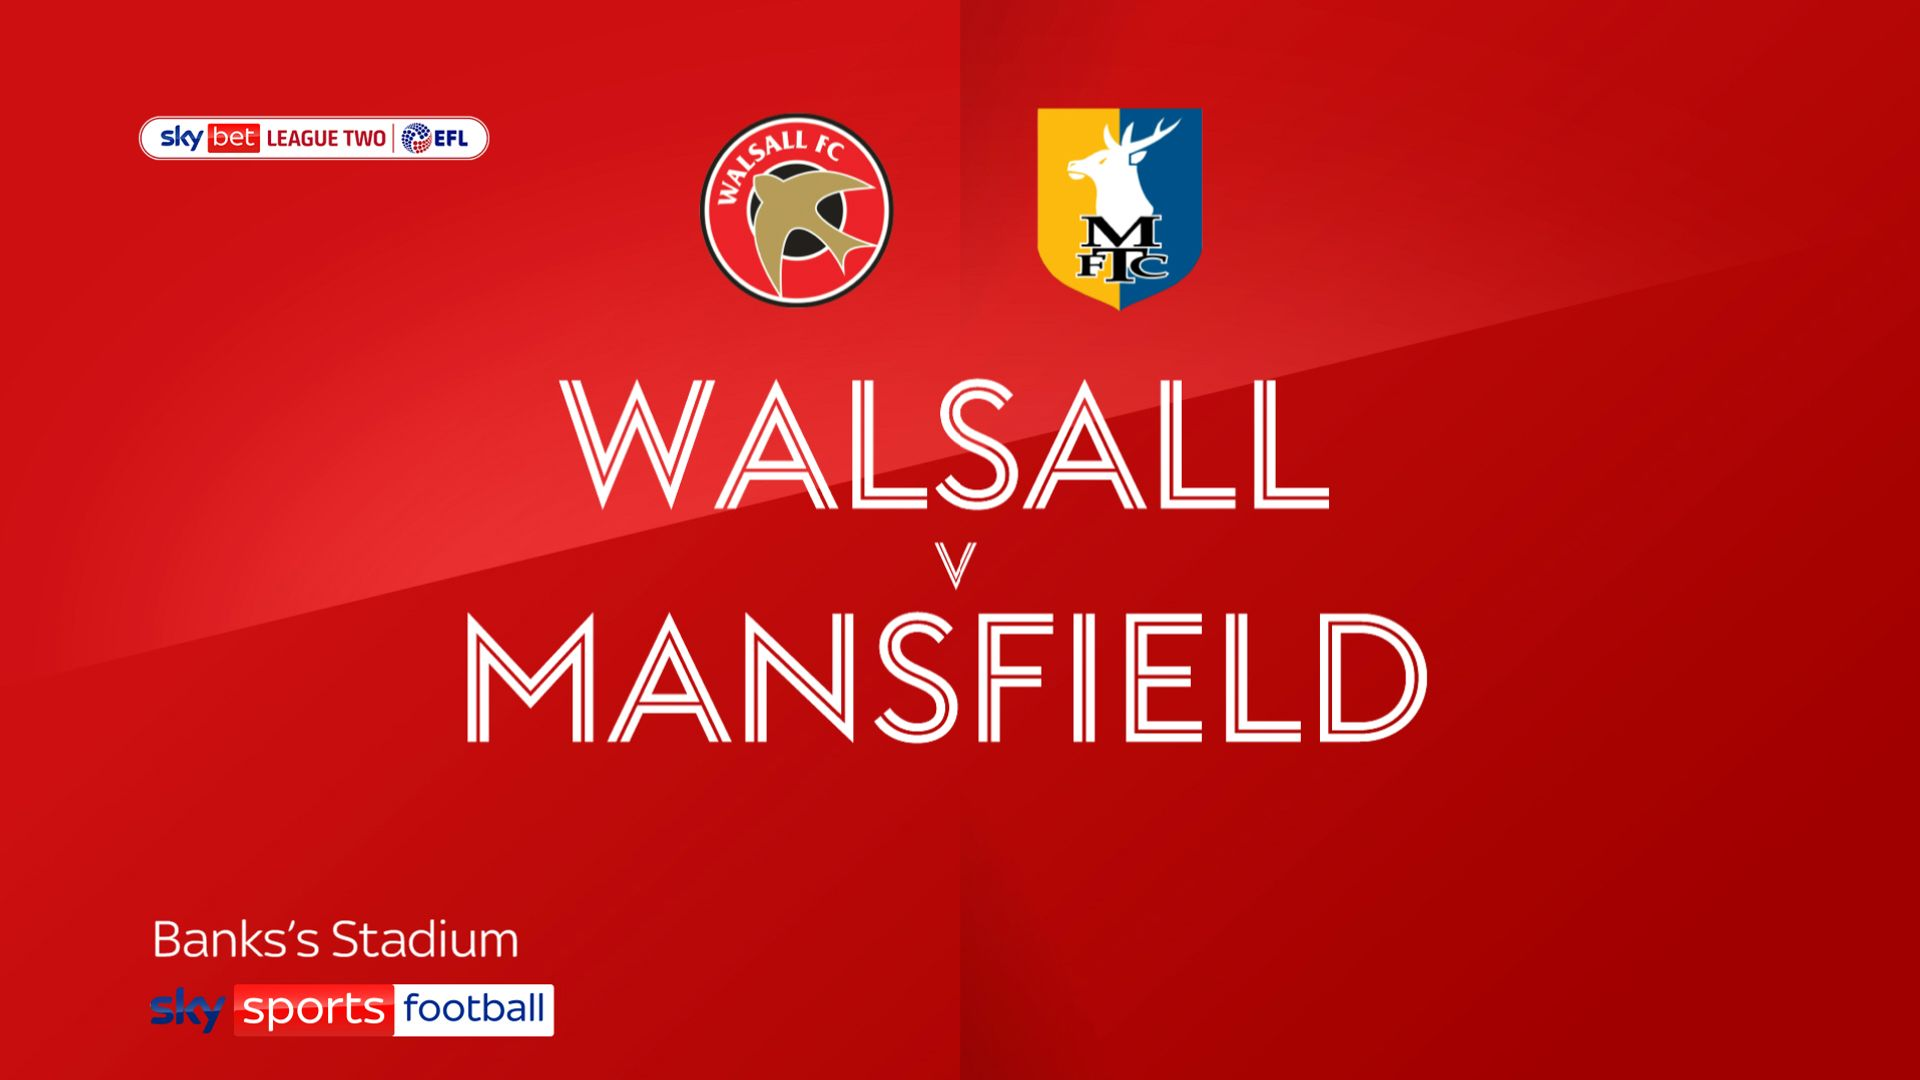 Mansfield hold Walsall